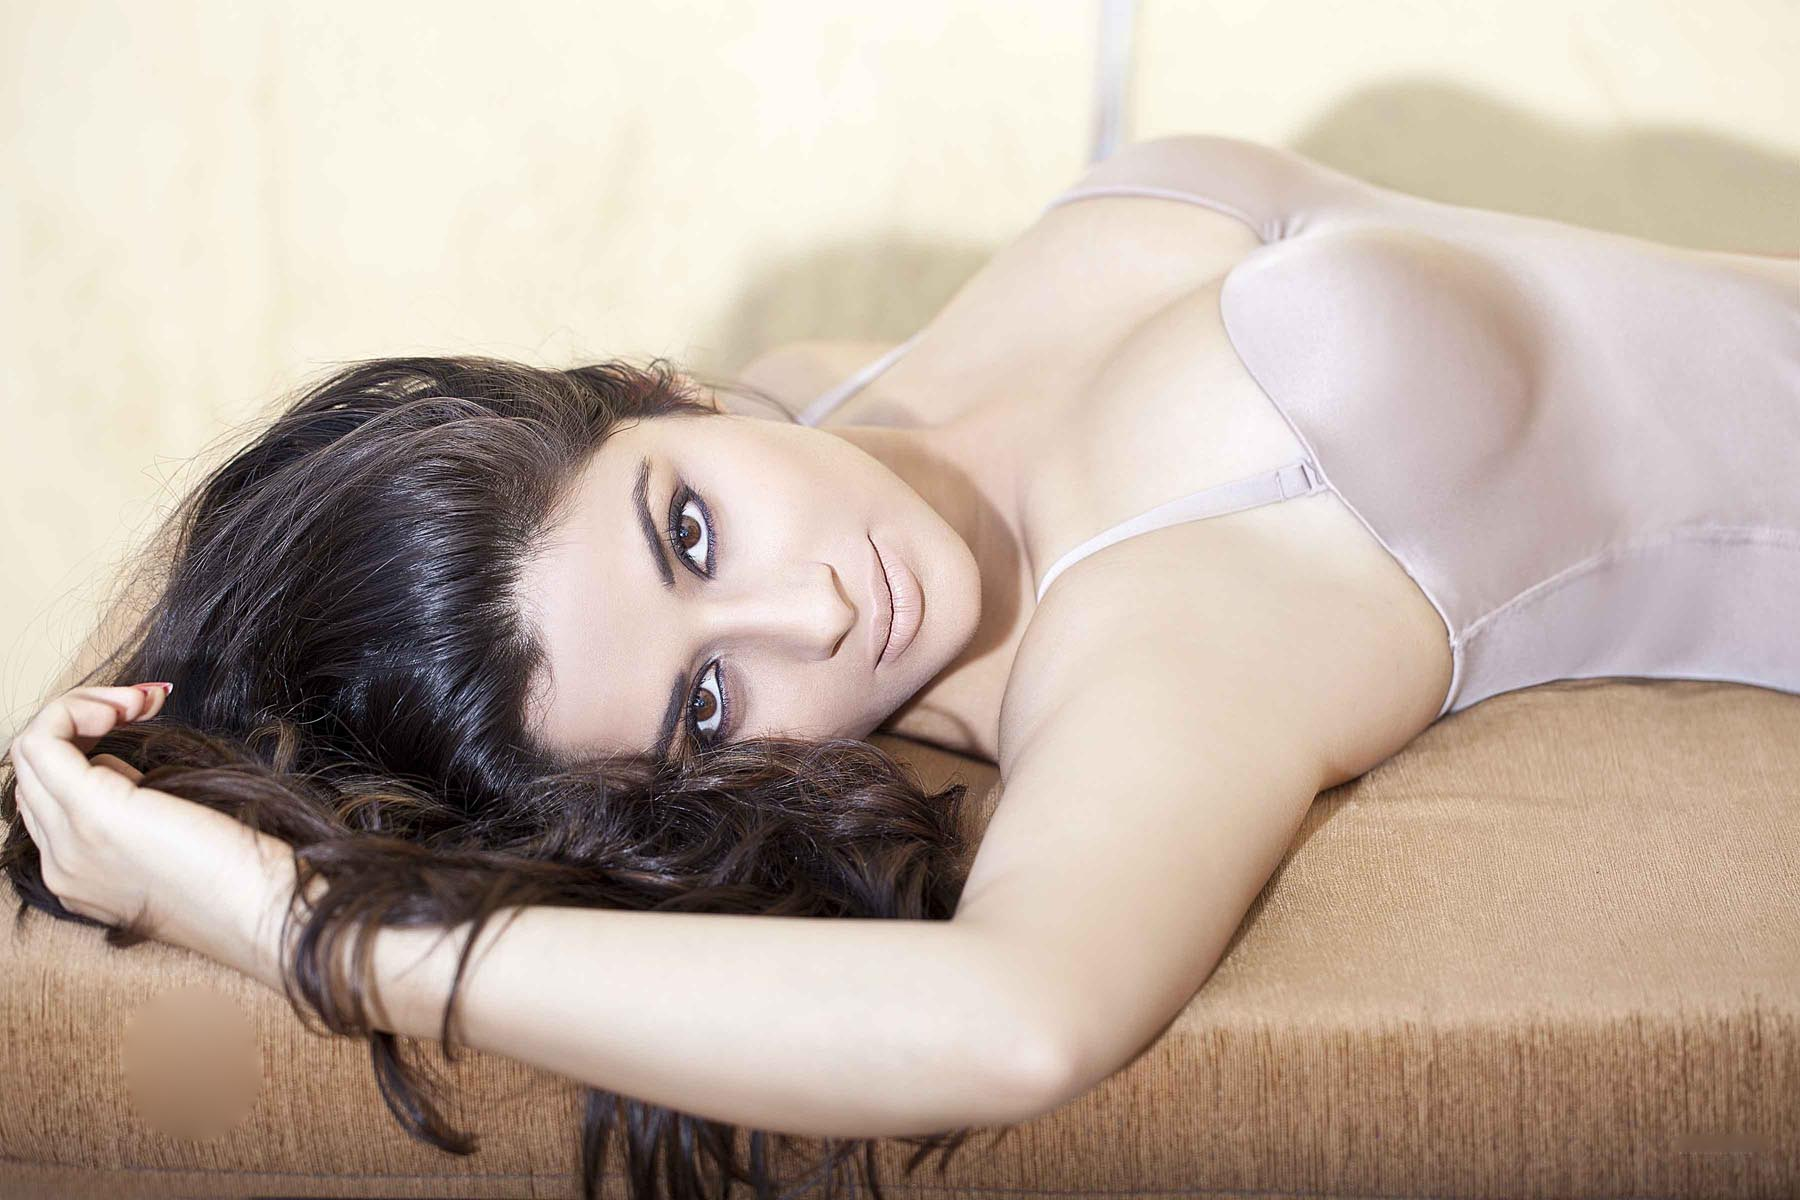 madhurima_banerjee_hd_hot-wallpaper